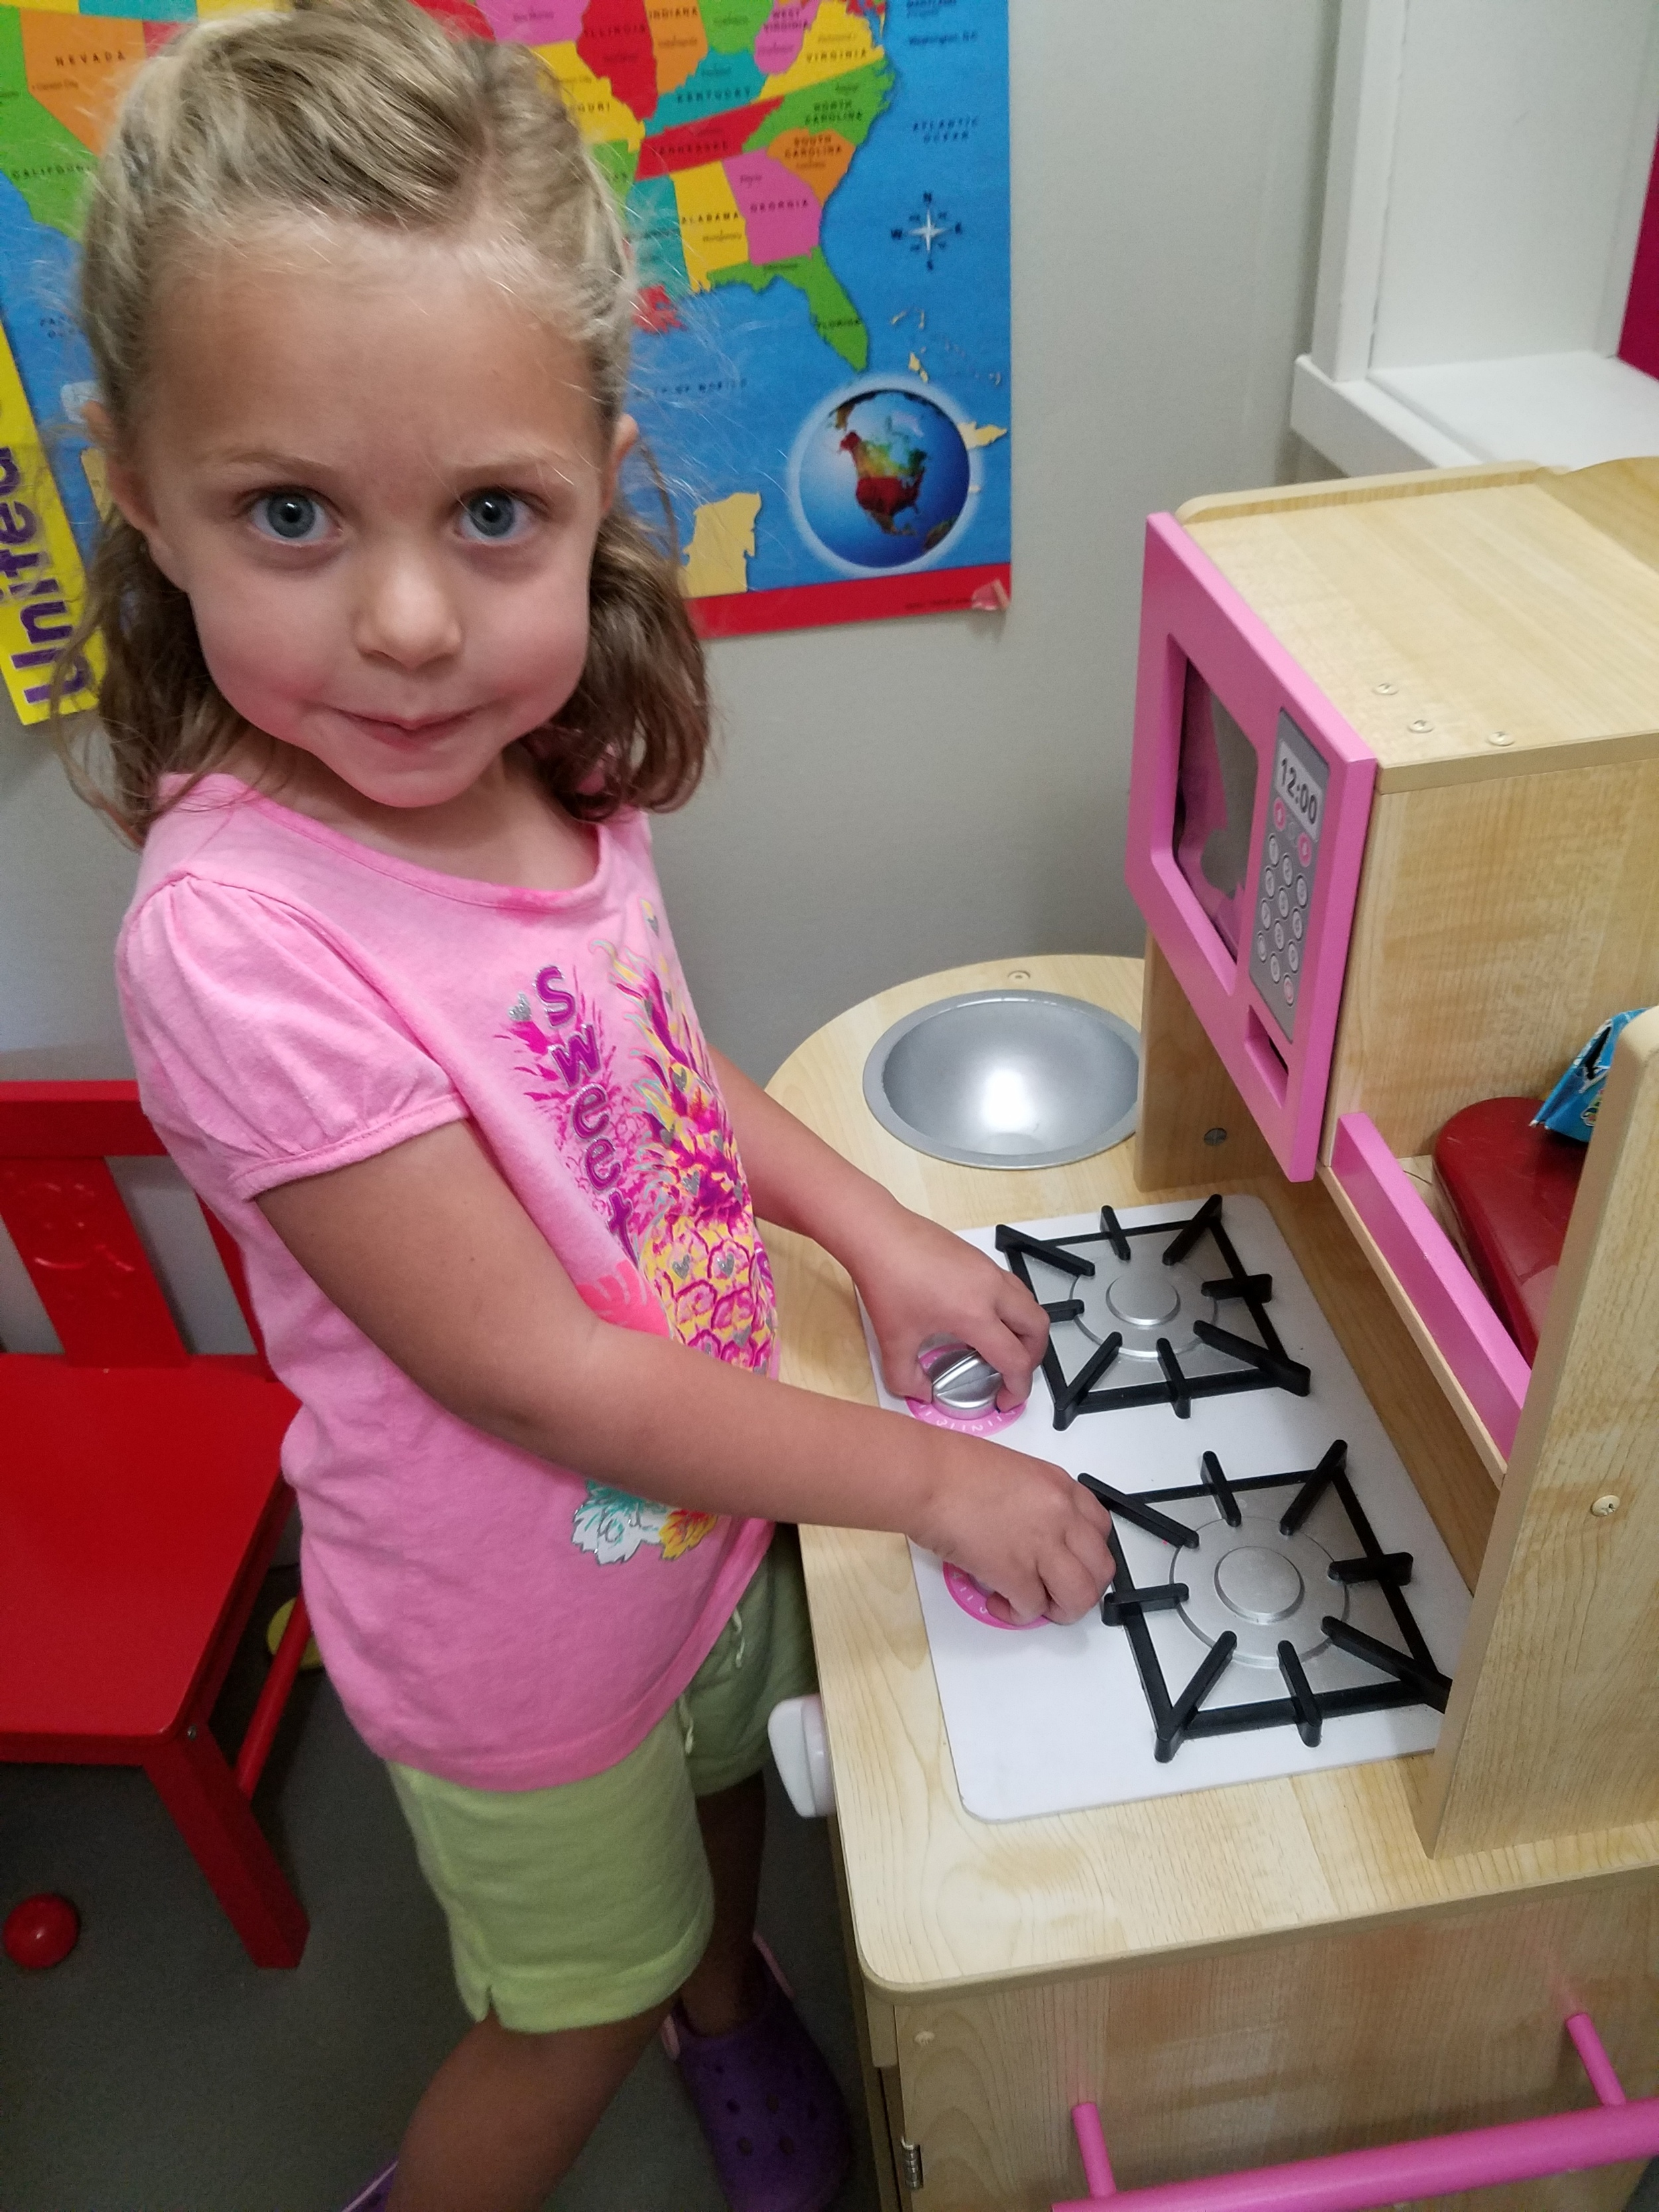 The Kitchen was out in Our Dramatic Play Center as it is a favorite!